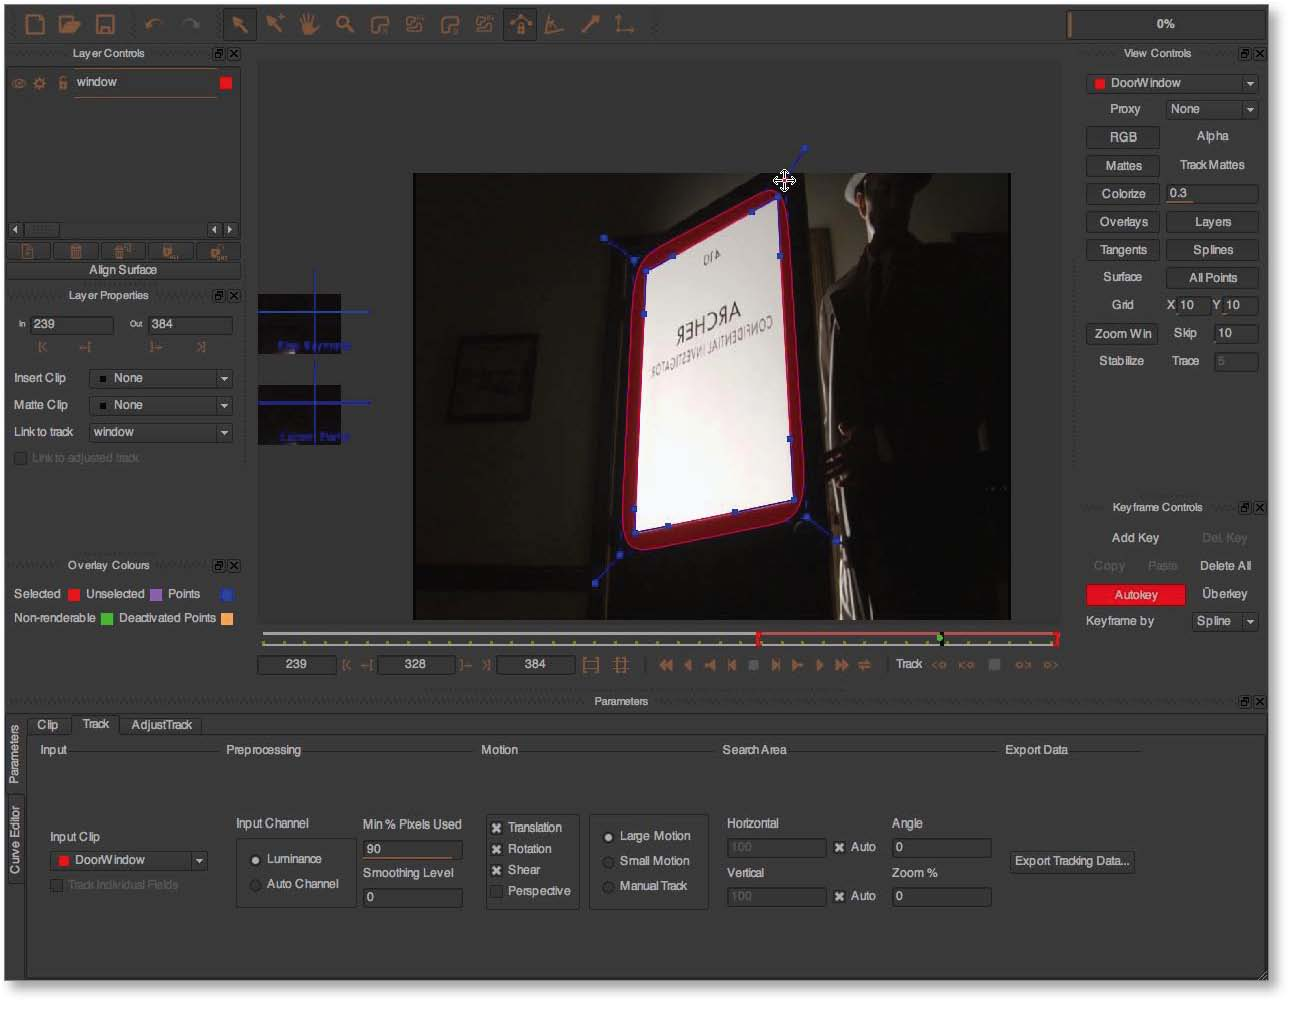 Adobe after effects cs4 templates free triphwebspac for Download template after effect cs4